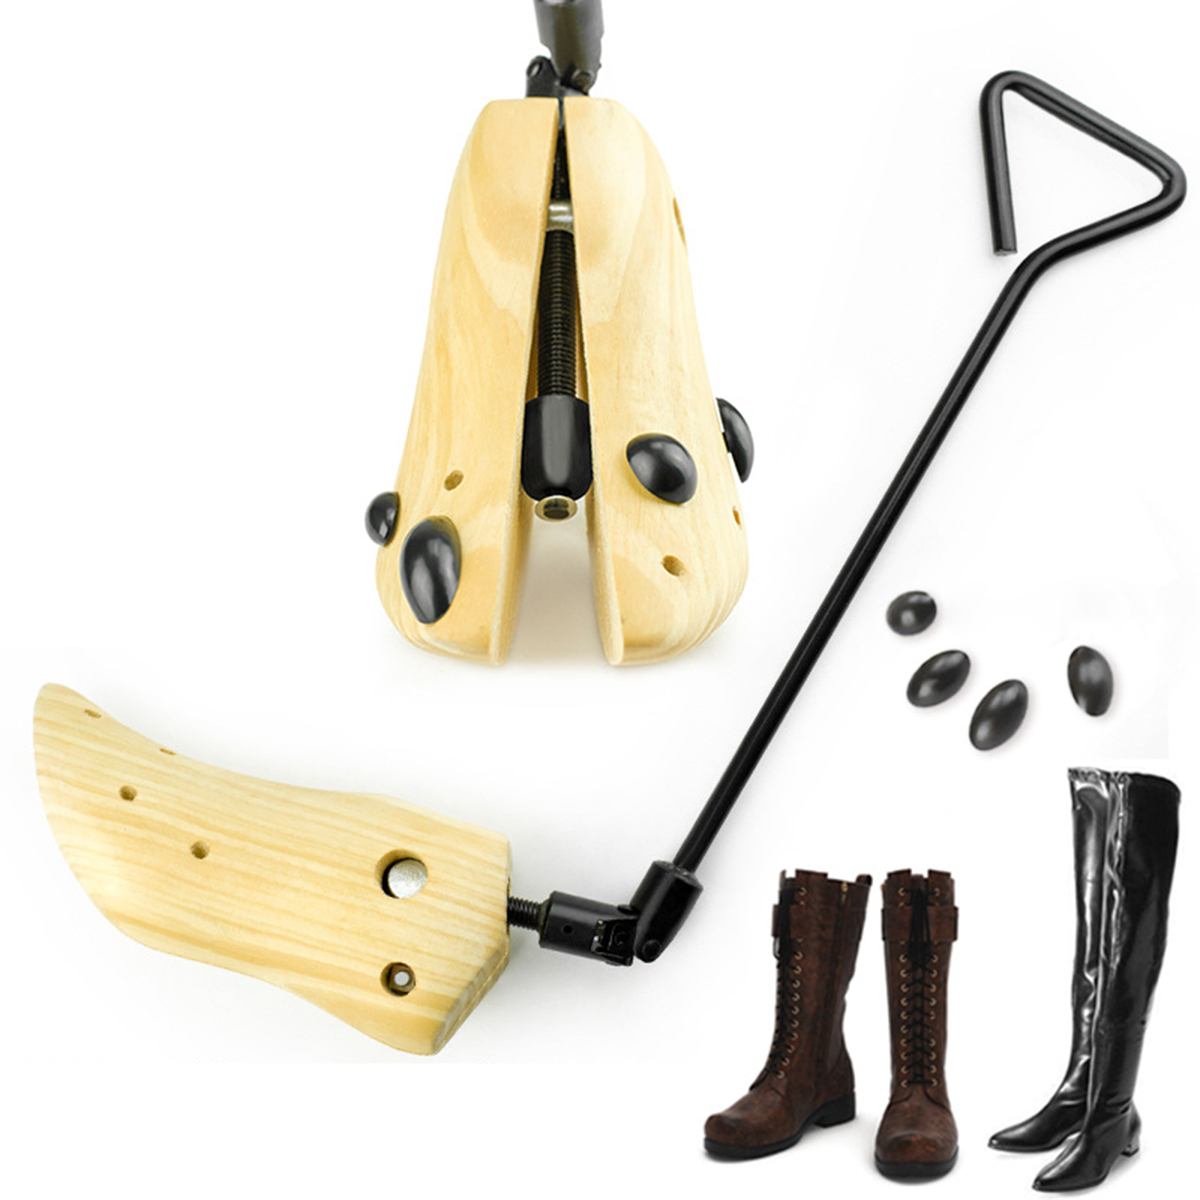 Adjustable Shoes Stretcher Men Women Shoe Boots Tree Shaper Pine Wooden 3 Sizes